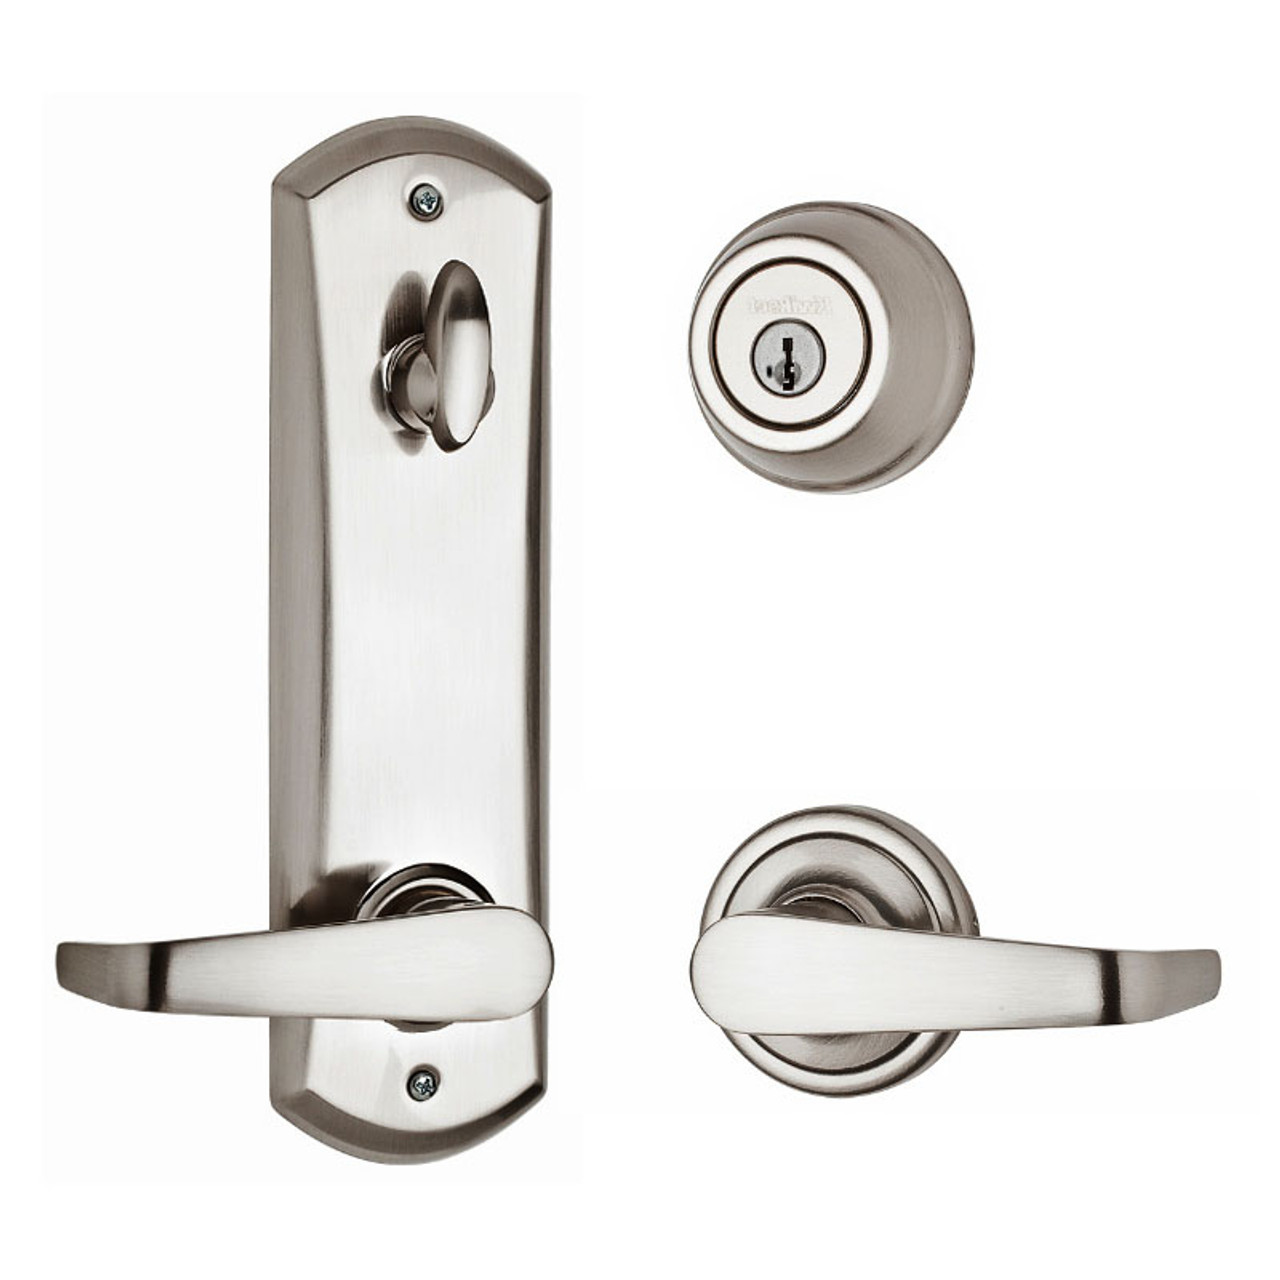 Kwikset Metal Interconnect Single Cylinder Smartkey 780 Deadbolt With Kingston Passage Lever Satin Chrome 508knl15smt